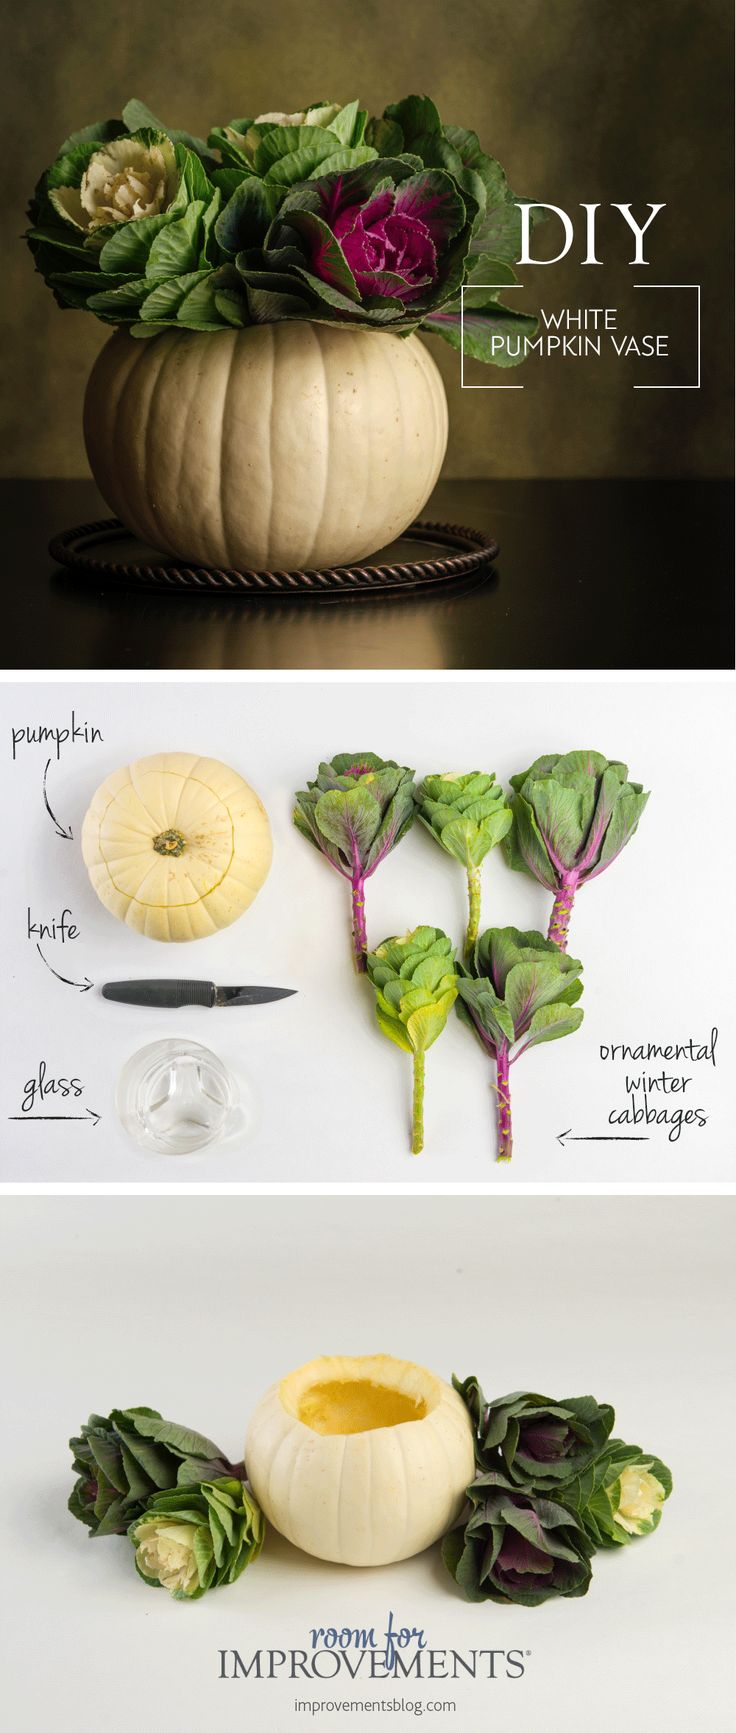 Food faith amp design thanksgiving goodies - Diy Thanksgiving Centerpieces